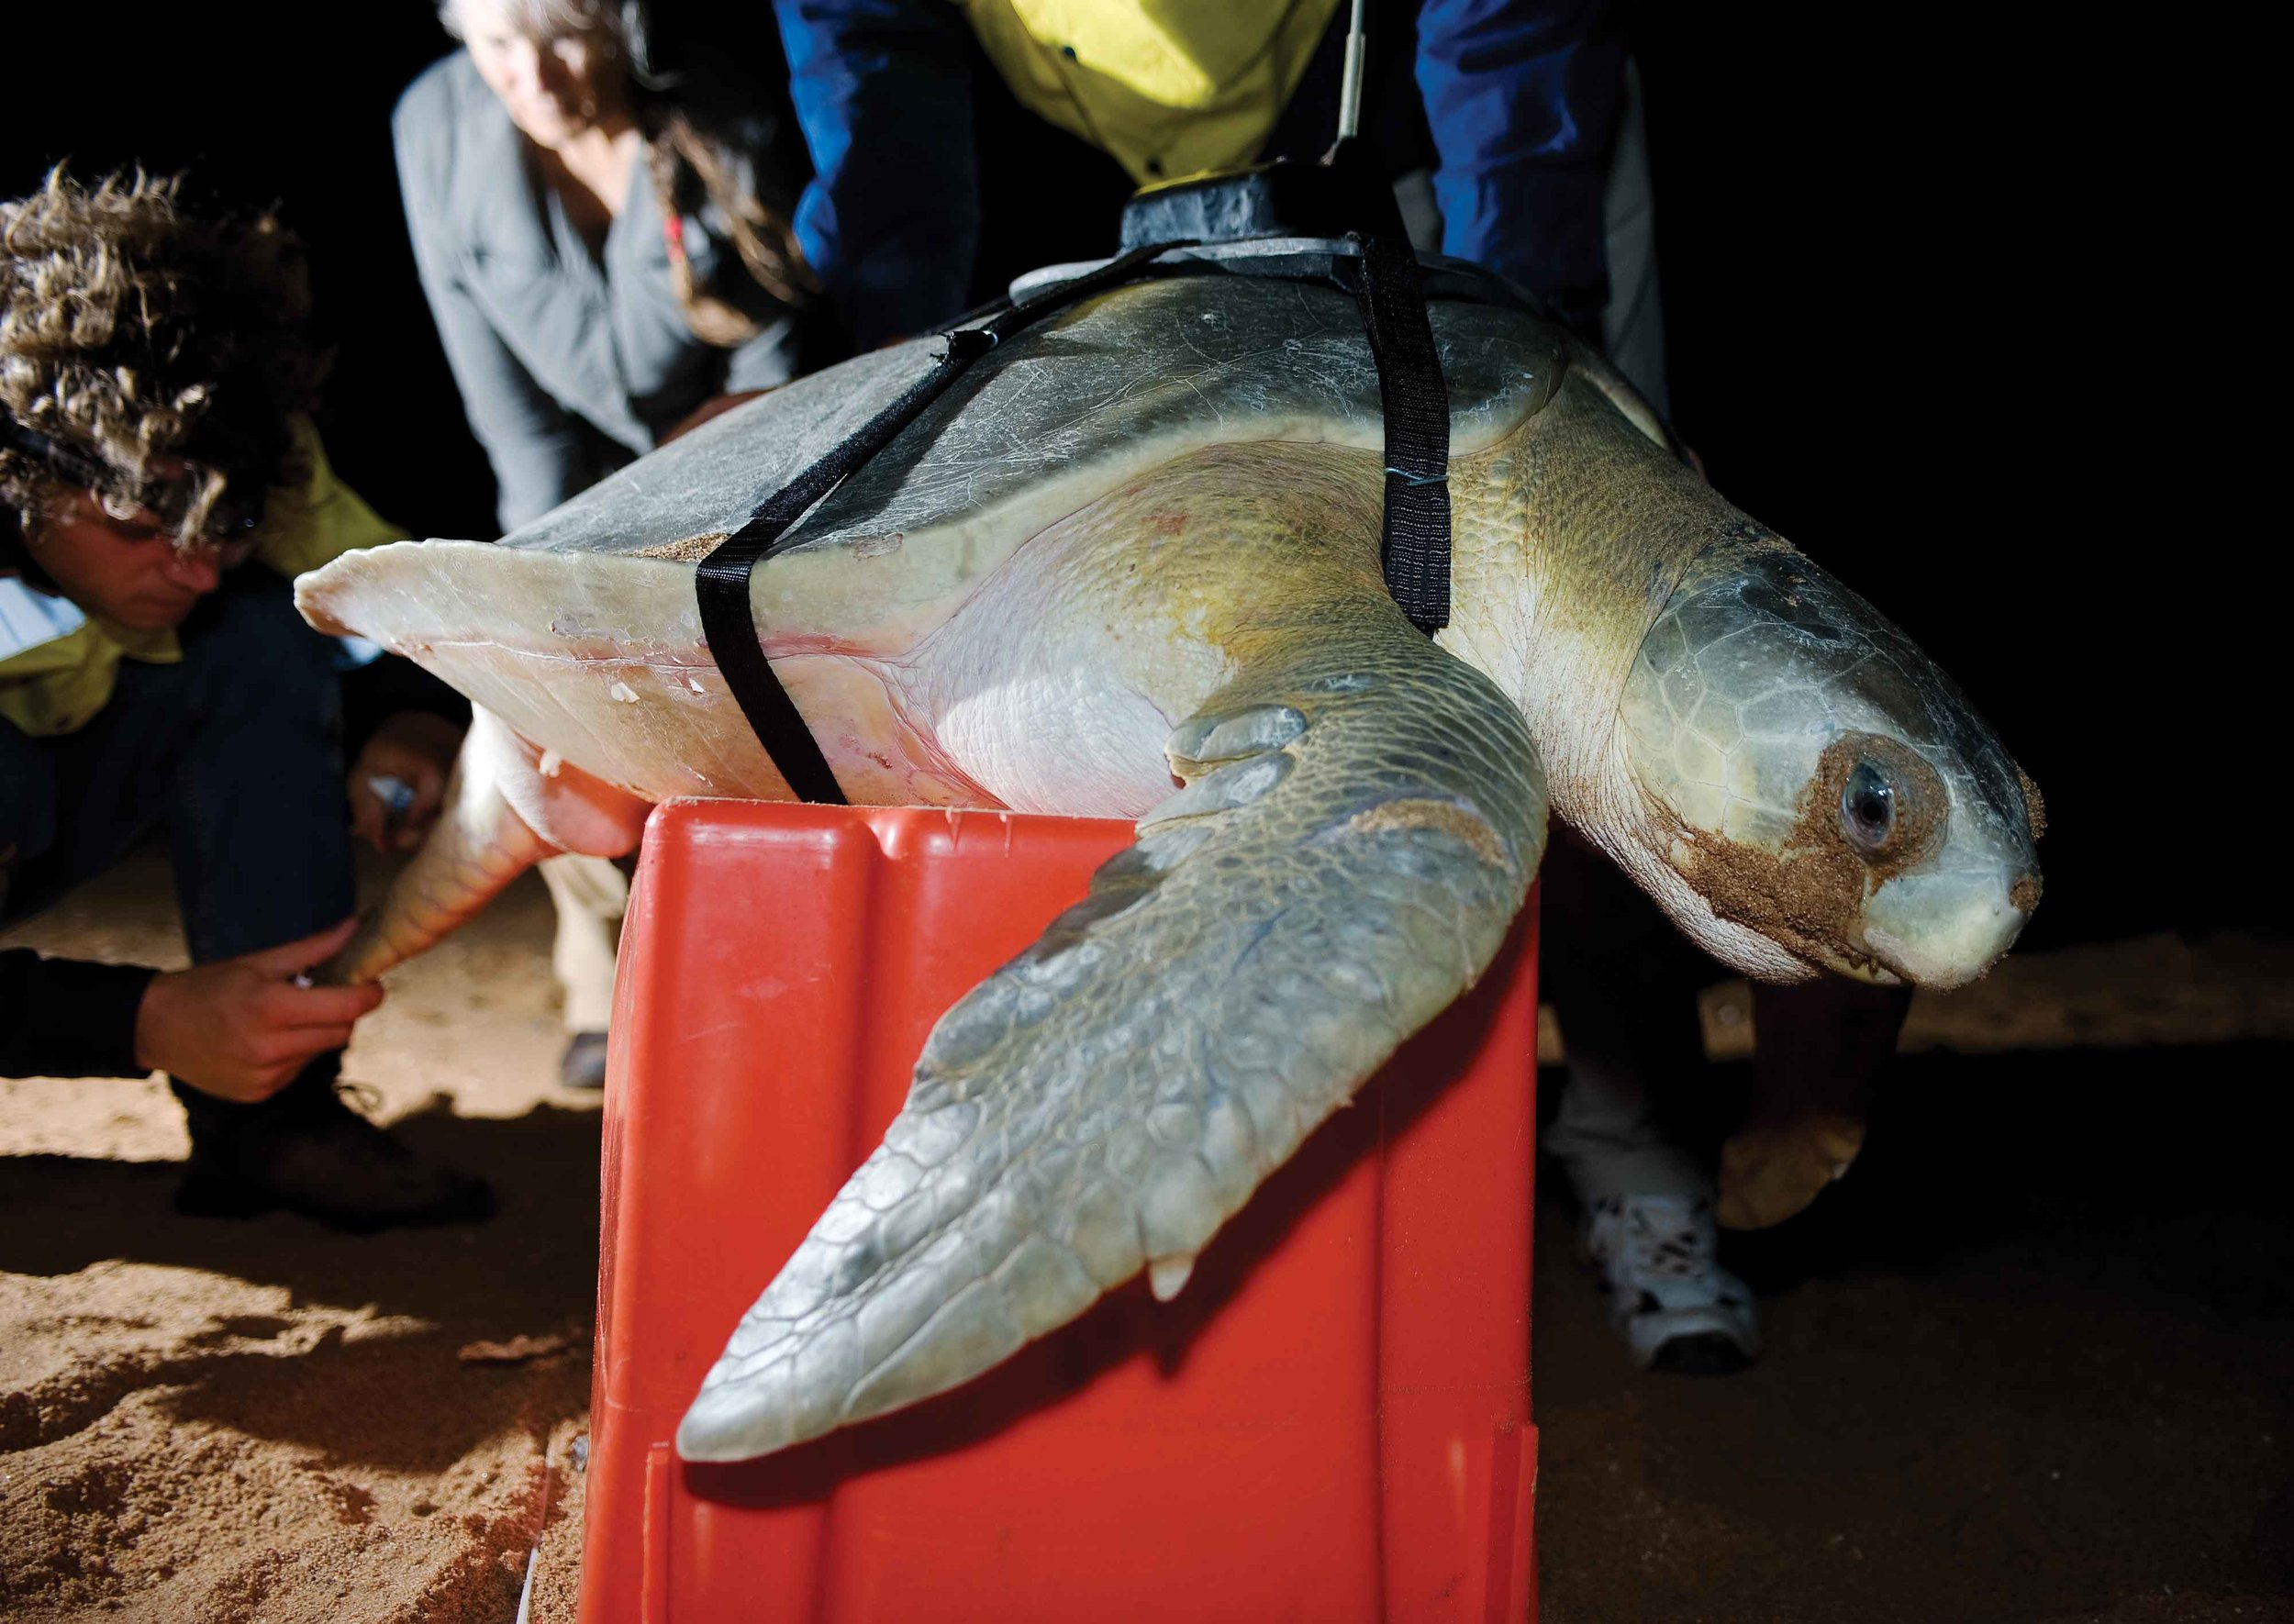 Researchers attach a satellite tag to a flatback turtle on Cemetery Beach in Port Hedland, Western Australia. Satellite tracking studies are shedding new light on the marine habitat use of flatback turtles, the only sea turtle species whose entire life cycle occurs on the continental shelf. © Calen Offield